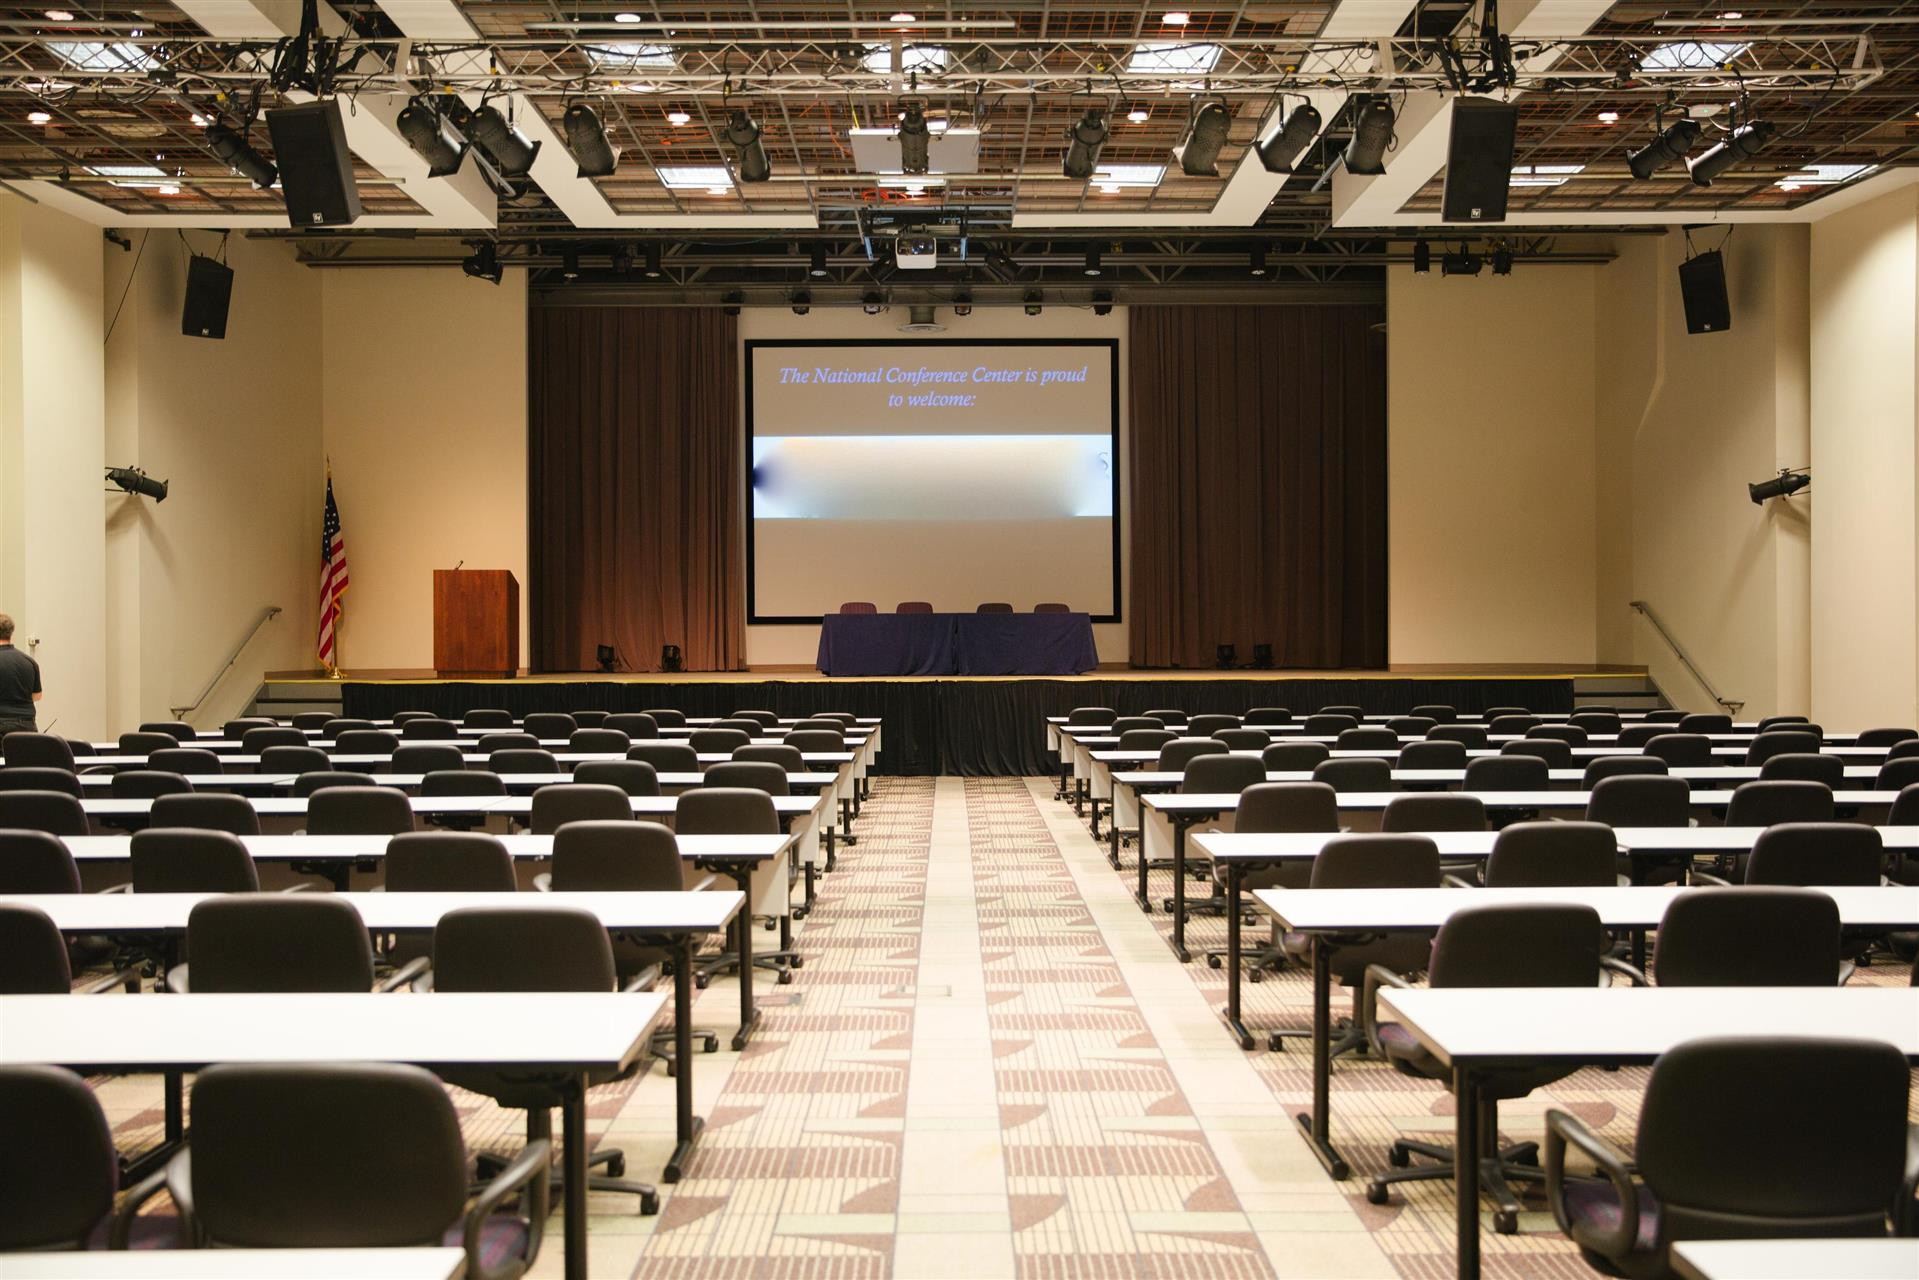 Meetings and events at The National Conference Center